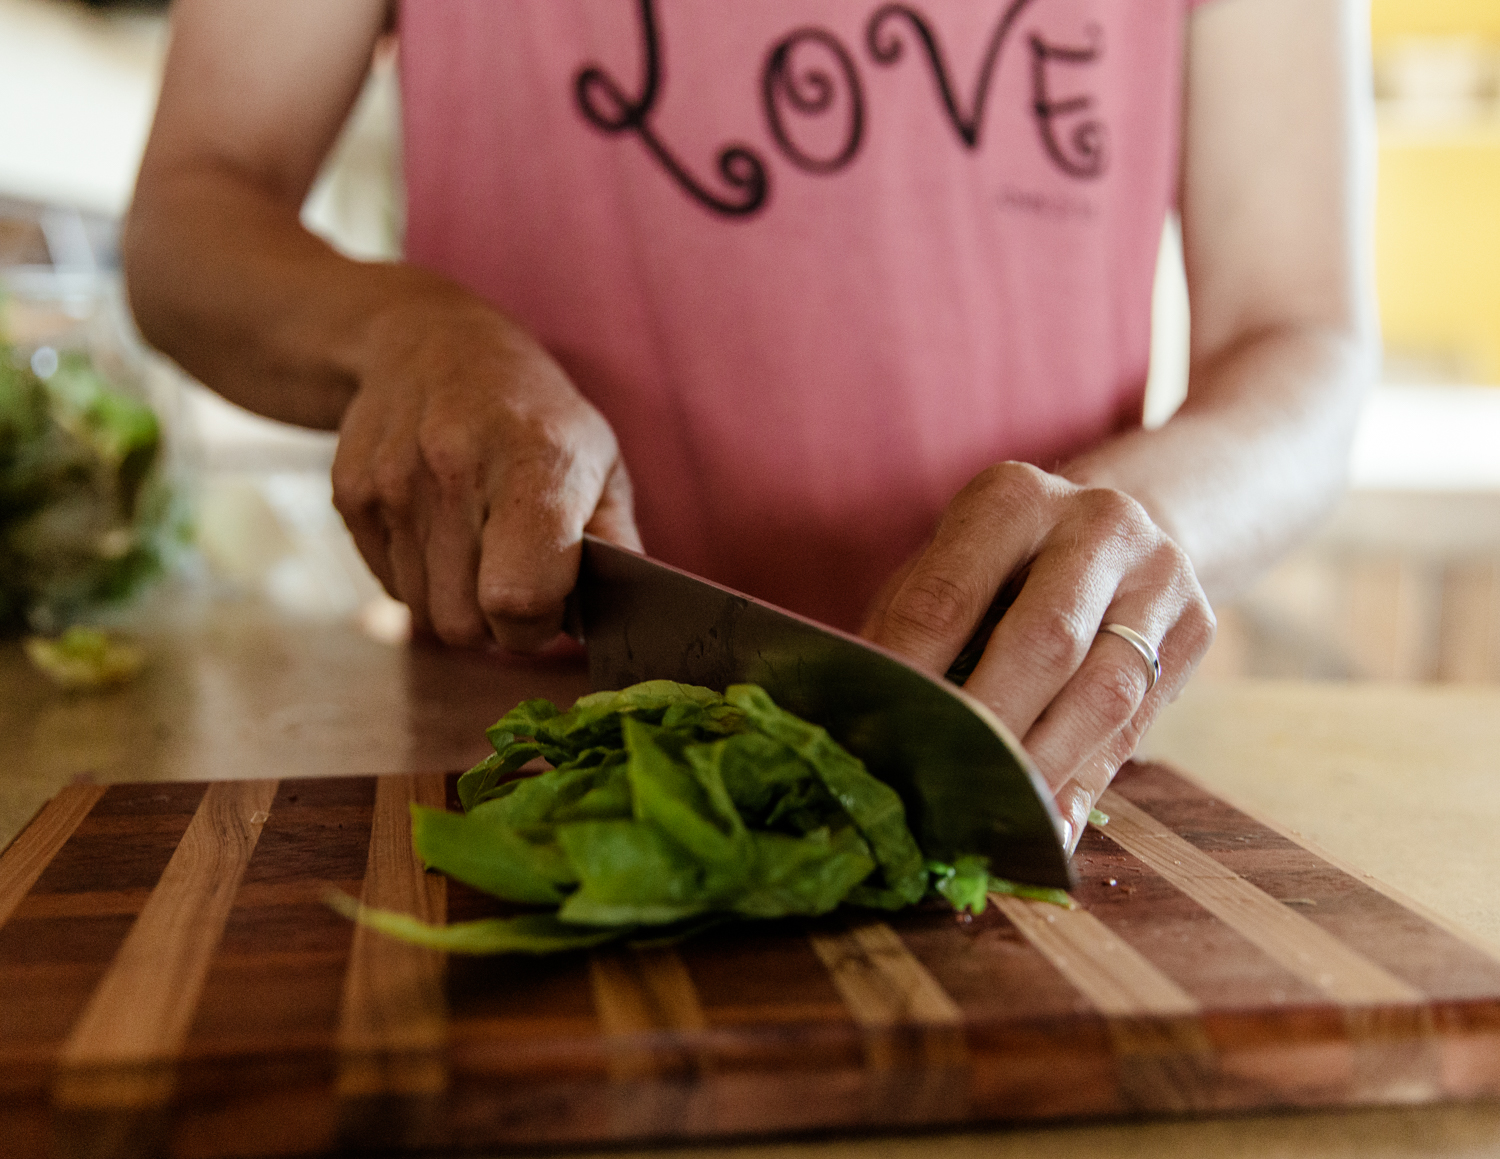 gylfphephoto_cristy_wellness_coach_kitchen_veg_013.jpg